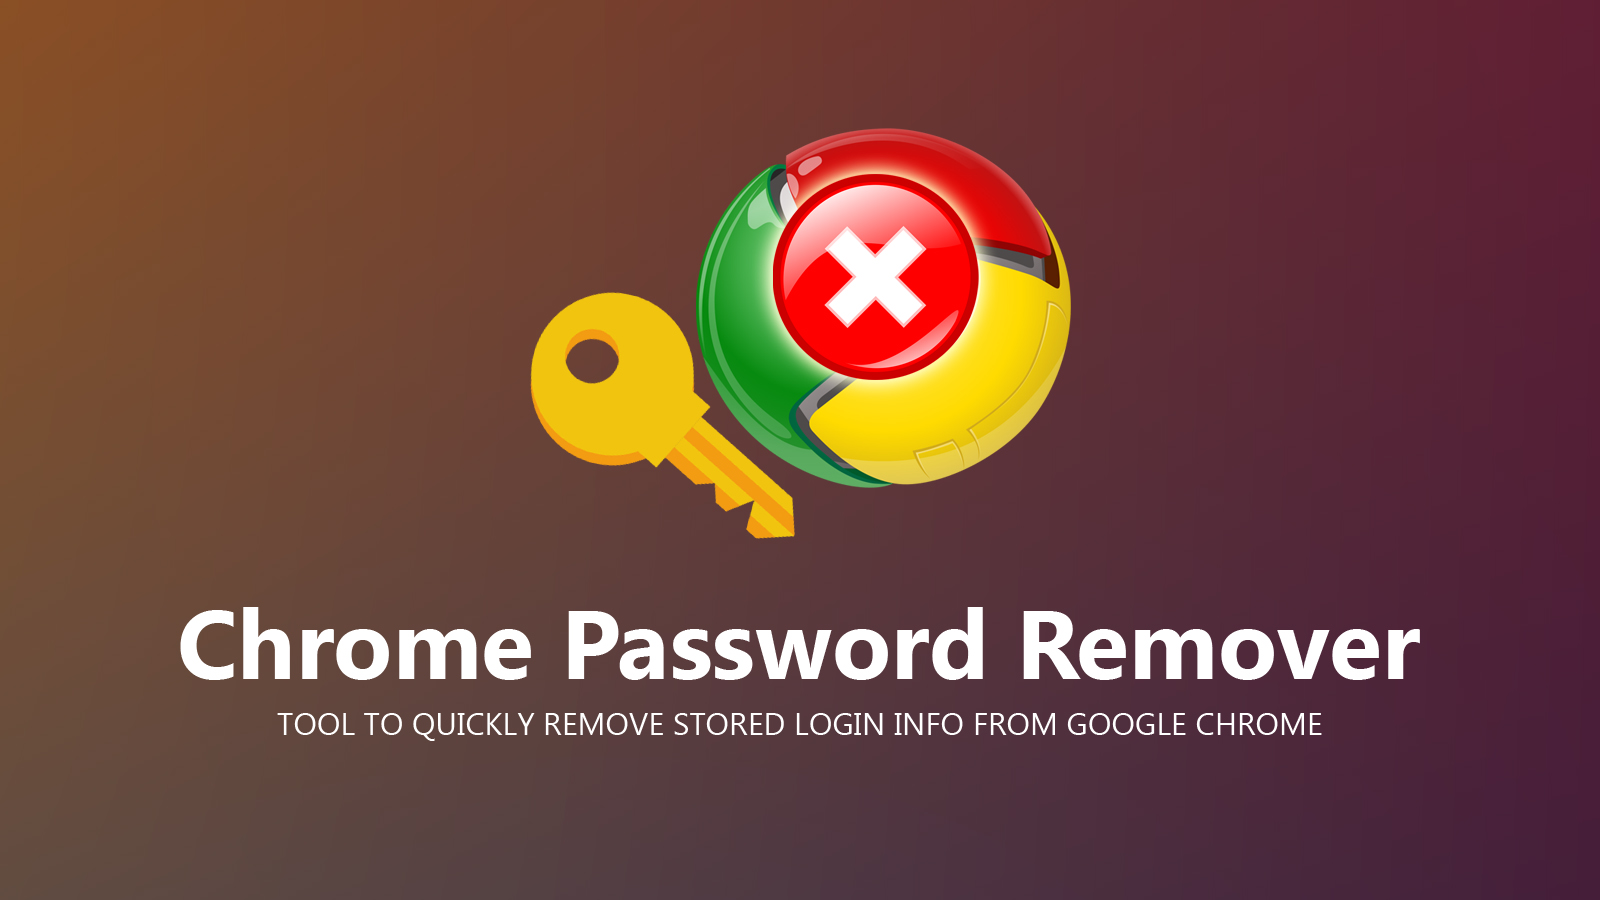 Chrome Password Remover Title Image